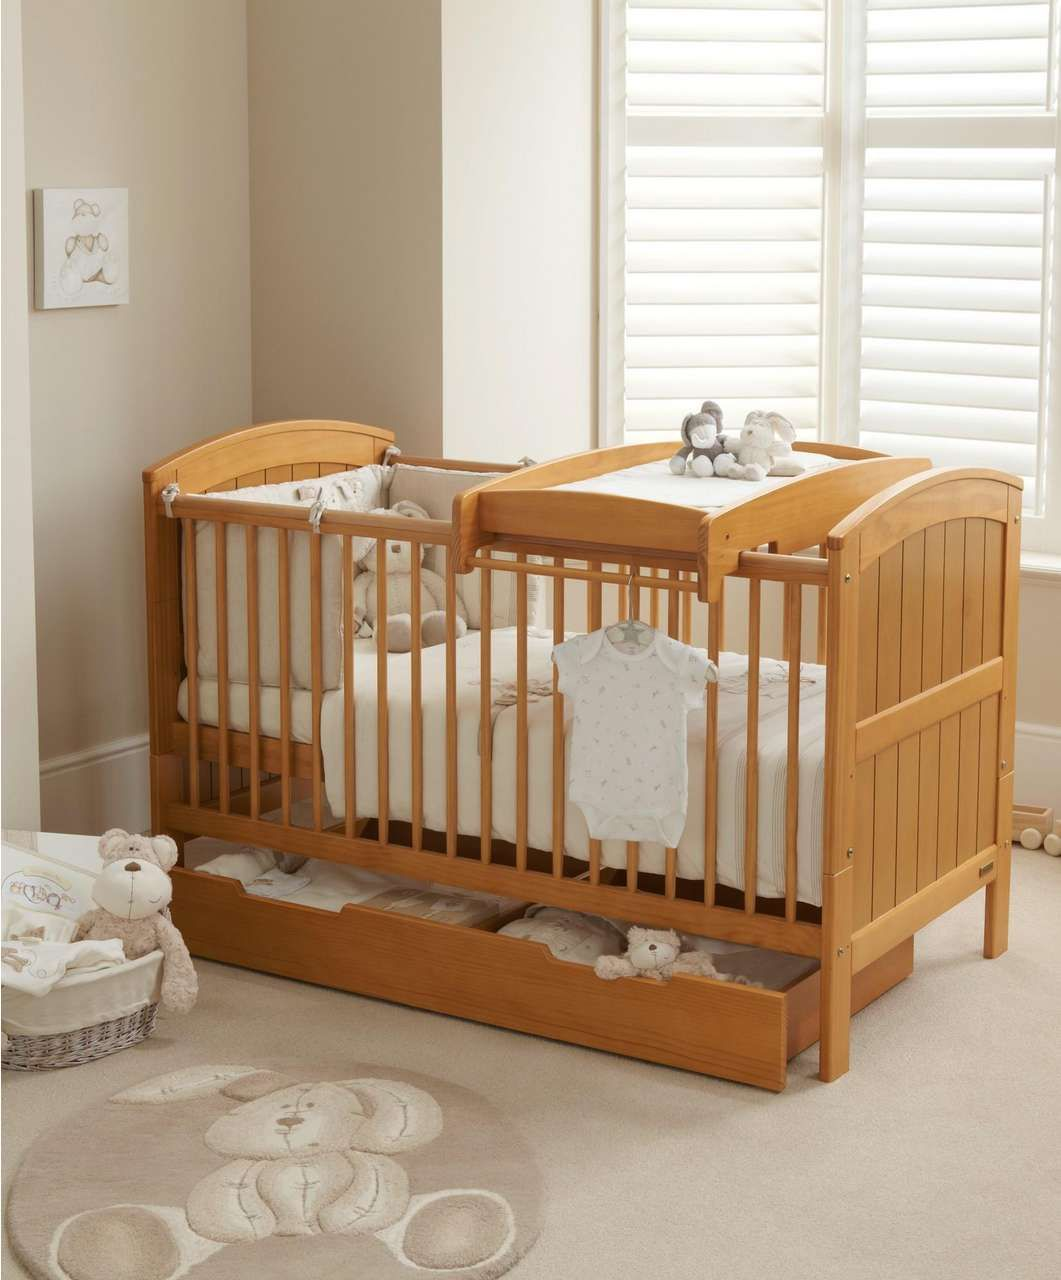 Baby cribs good quality - Mamas Papas Stylish Products Such As Baby Snug Sola Urbo Stroller Pixi Juice High Chairs Once Upon A Time Interiors And Plush Toys Are Now